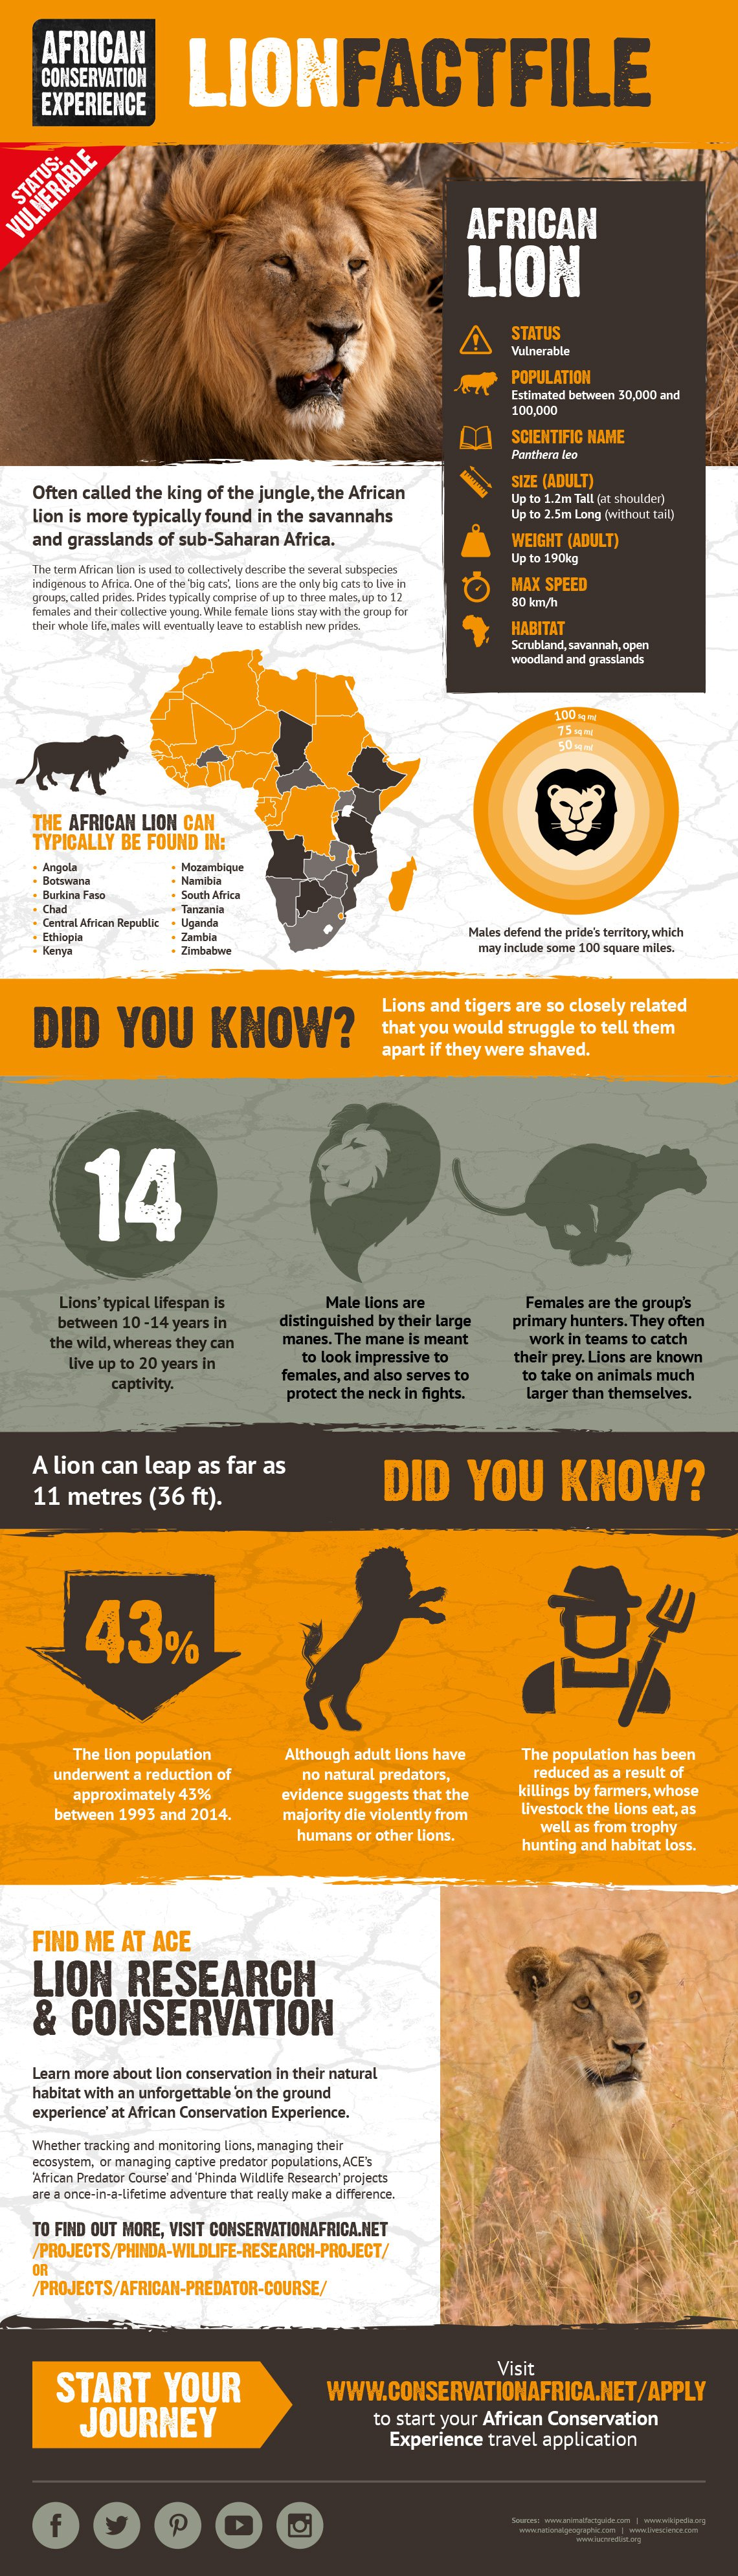 Rip Roaring Facts About The African Lion